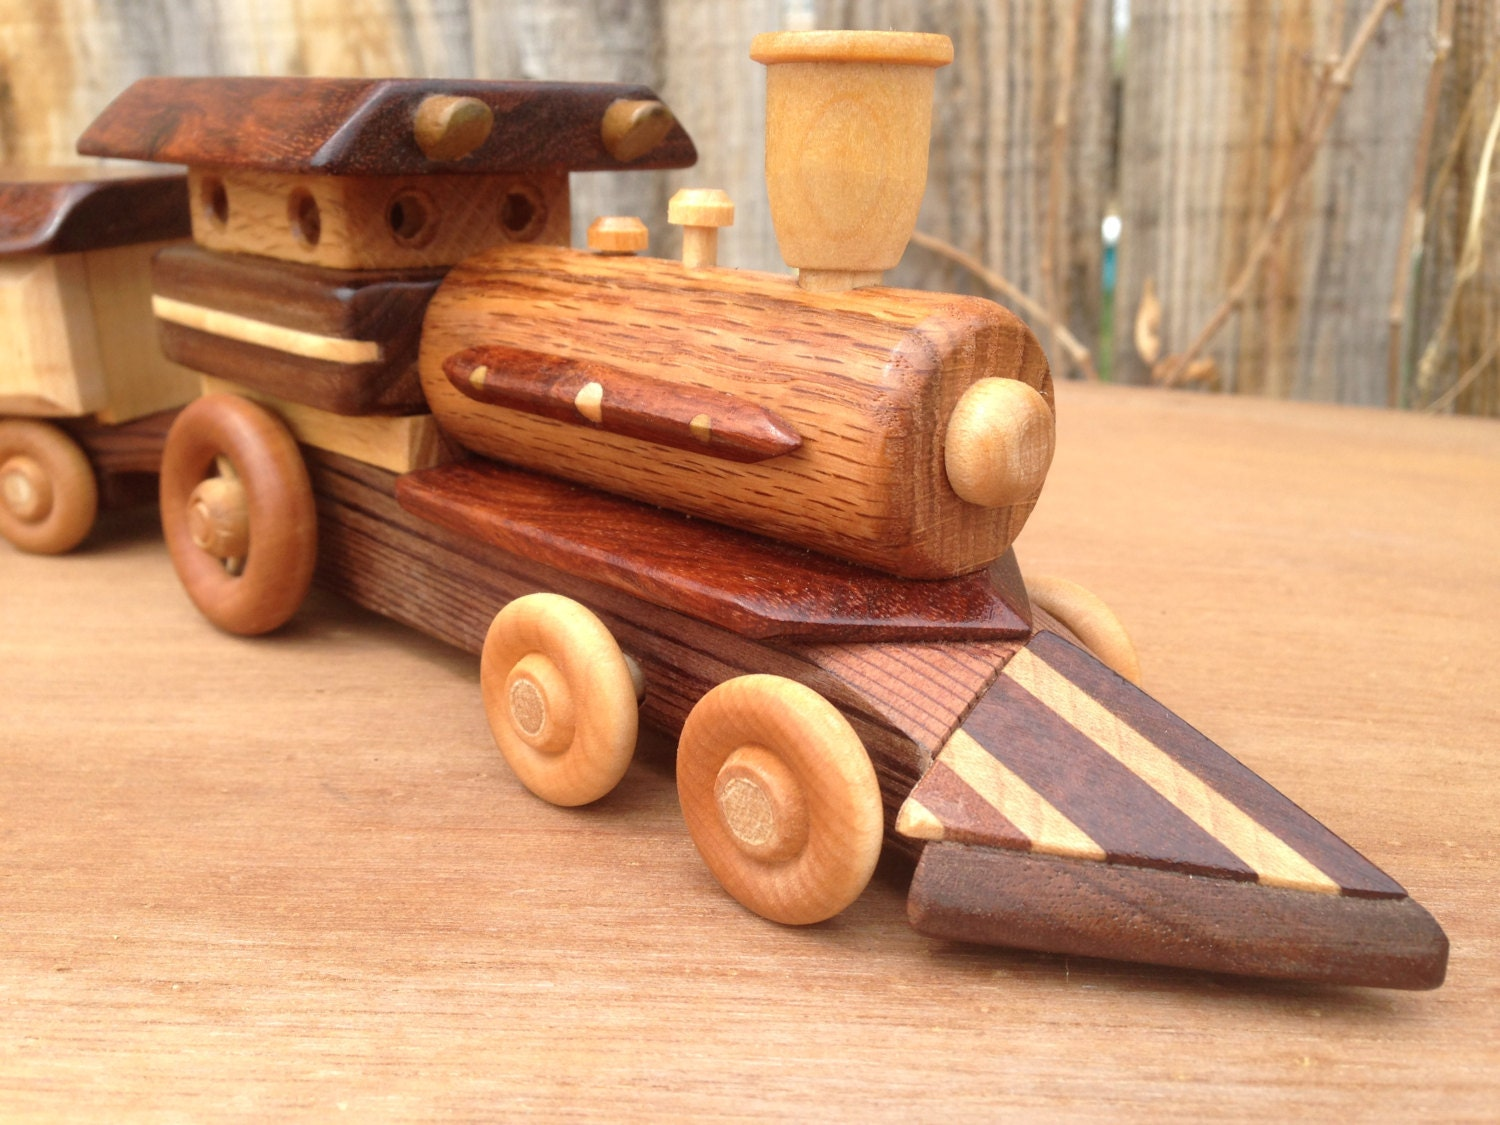 Wooden Toy Trains : Wooden toy train with locomotive steam engine by